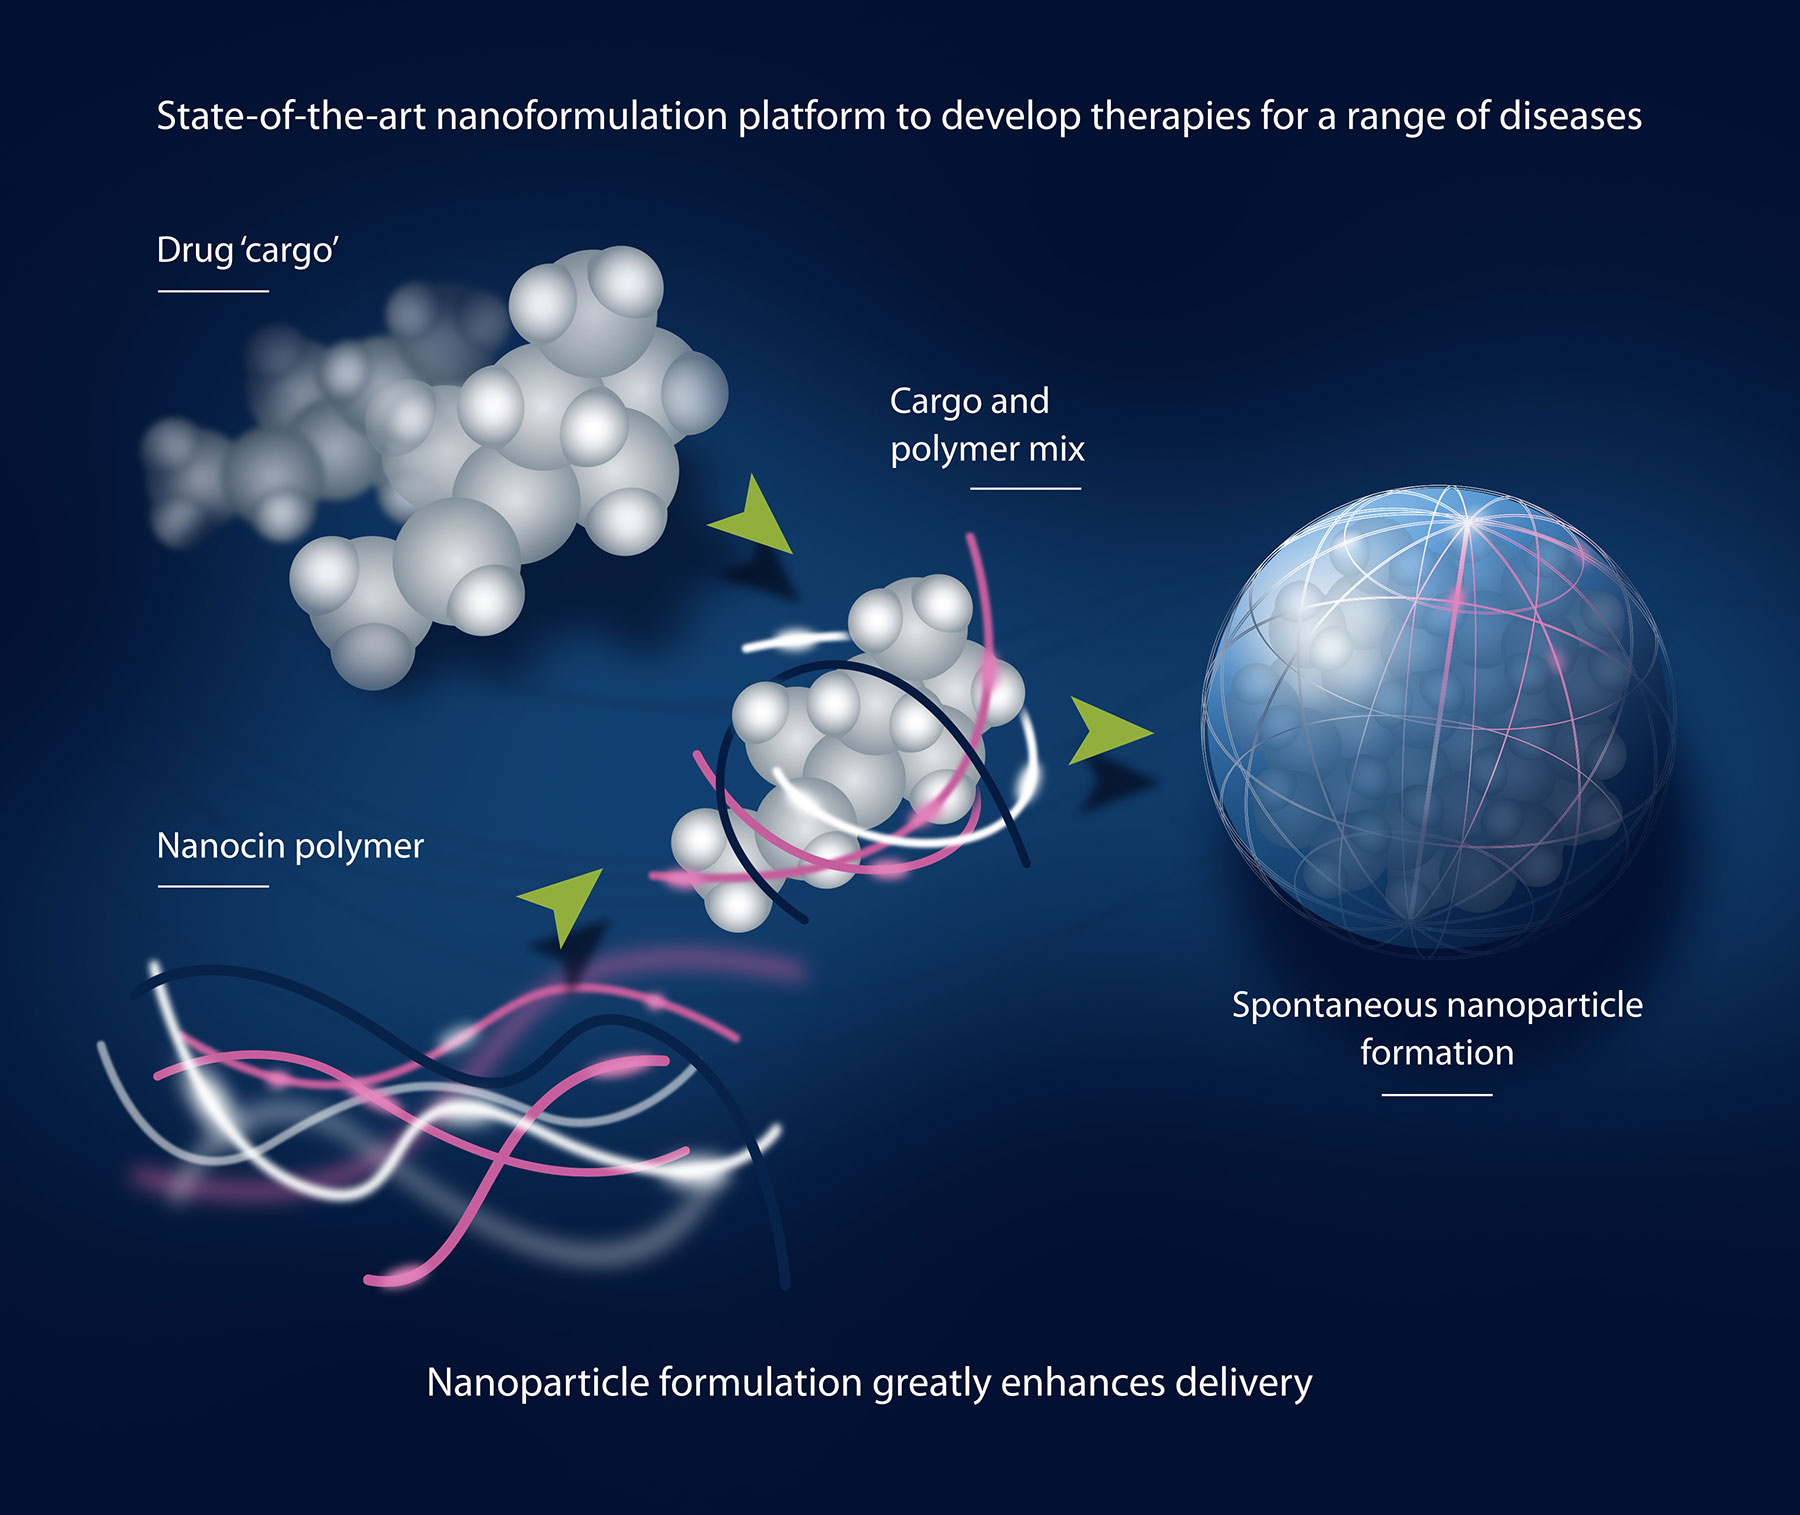 Nanoparticle formulation greatly enhances delivery